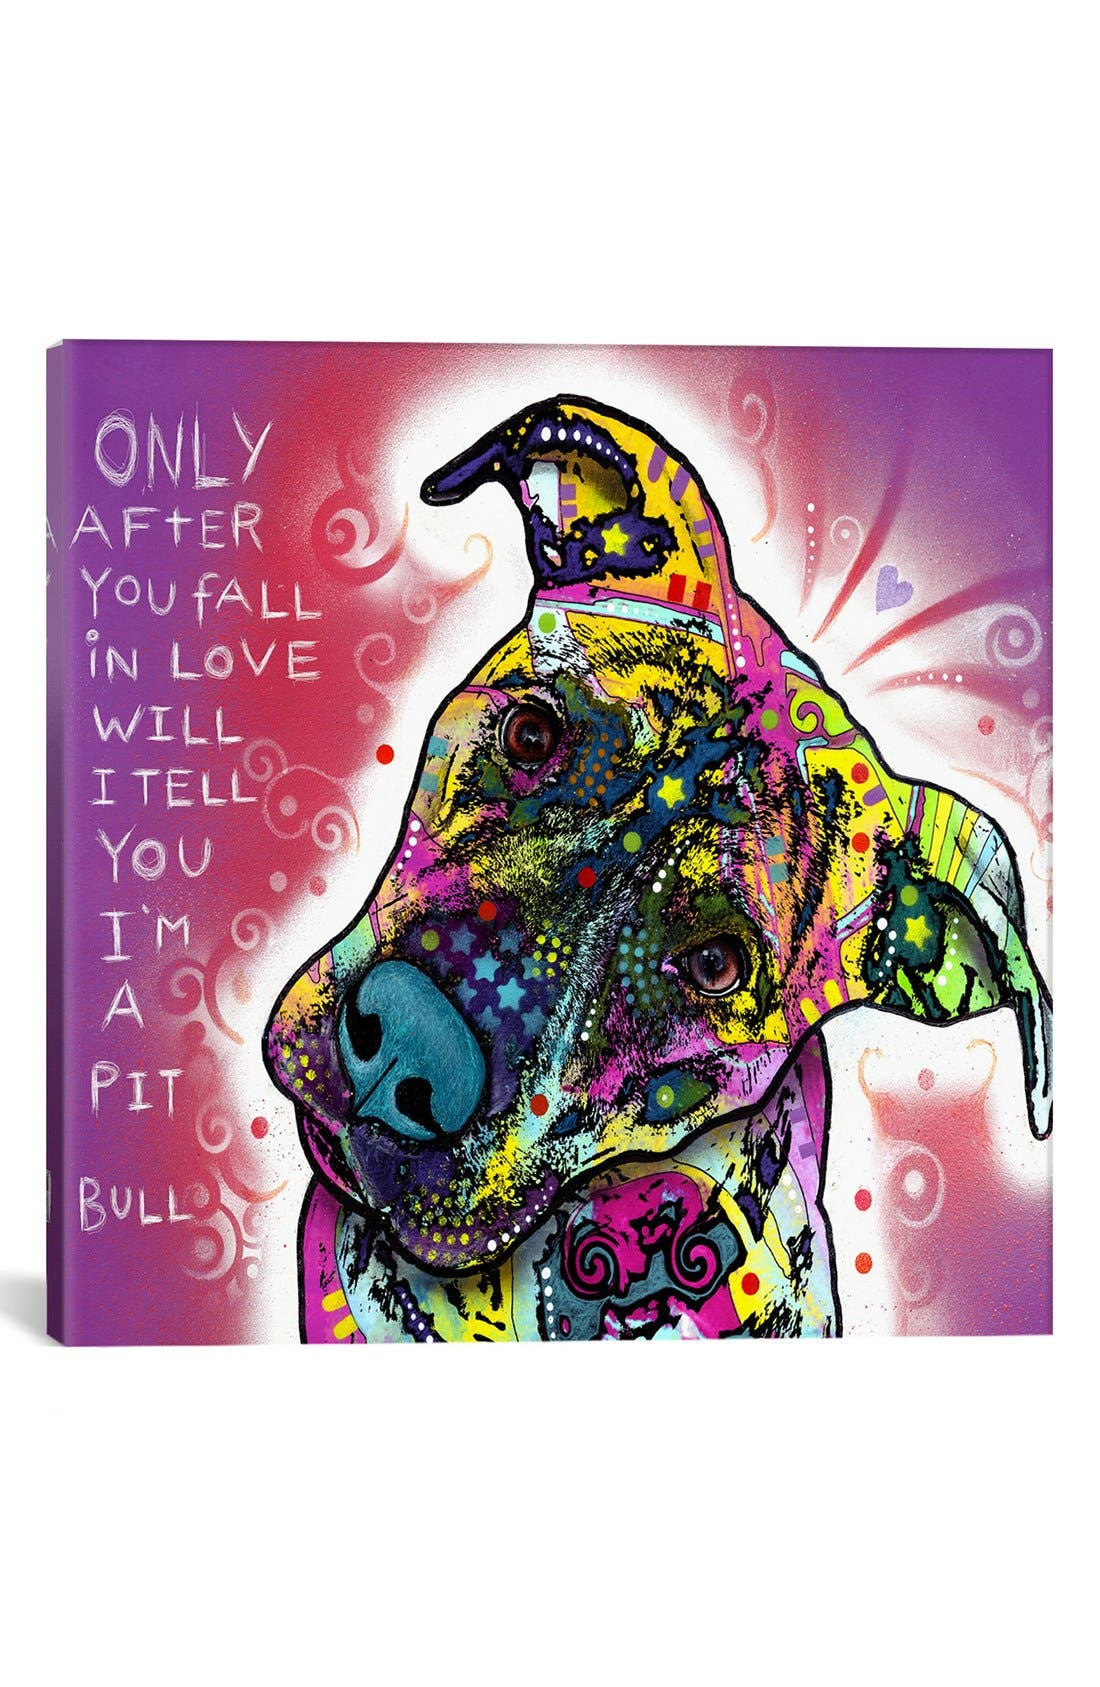 Alternate Image 1 Selected - iCanvas 'I'm a Pit Bull - Dean Russo' Giclée Print Canvas Art